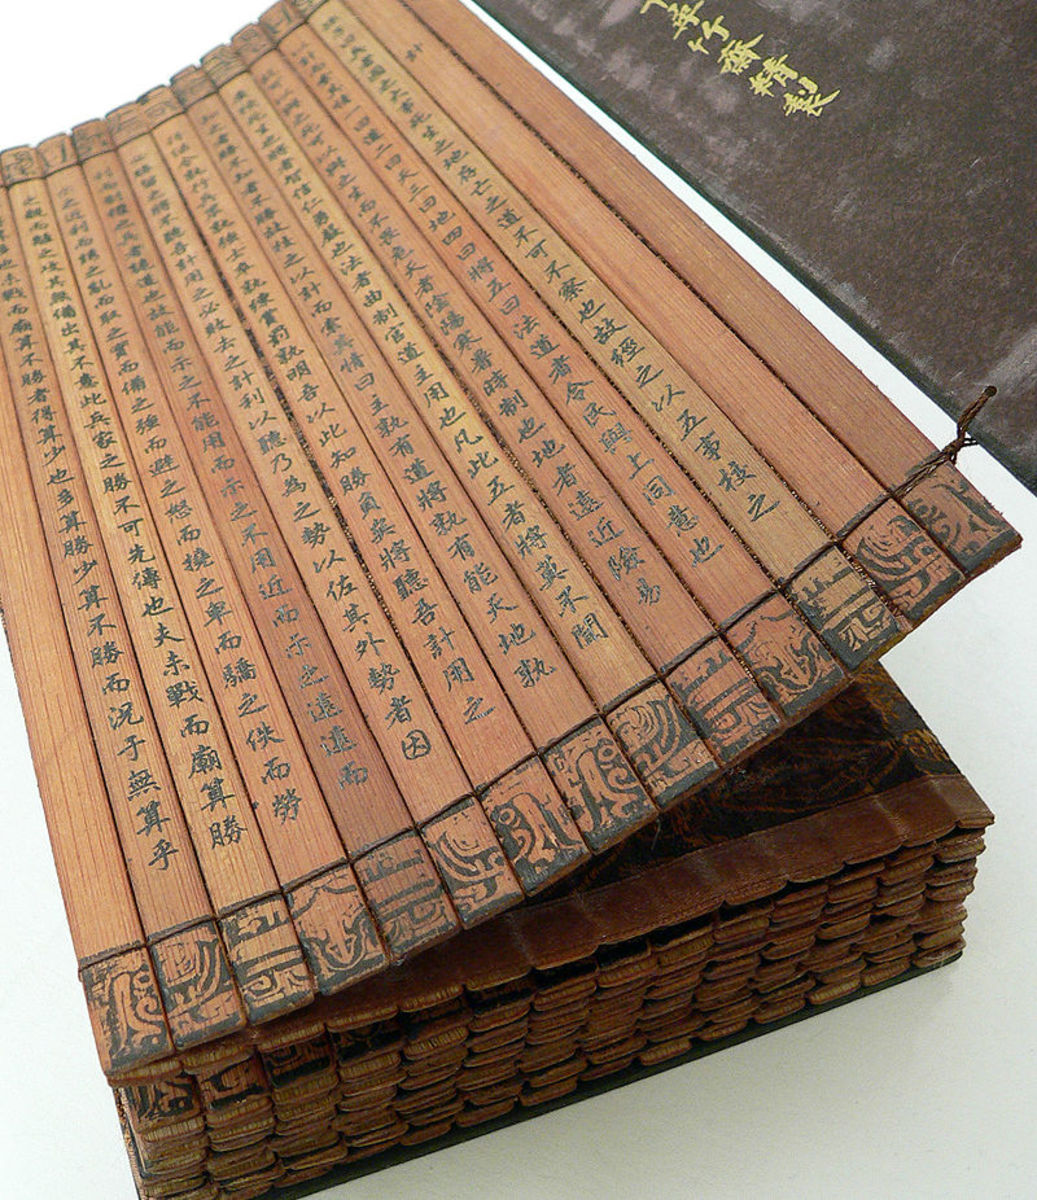 An actual copy of 'The Art of War' as it was originally written on bamboo strips then bound together.